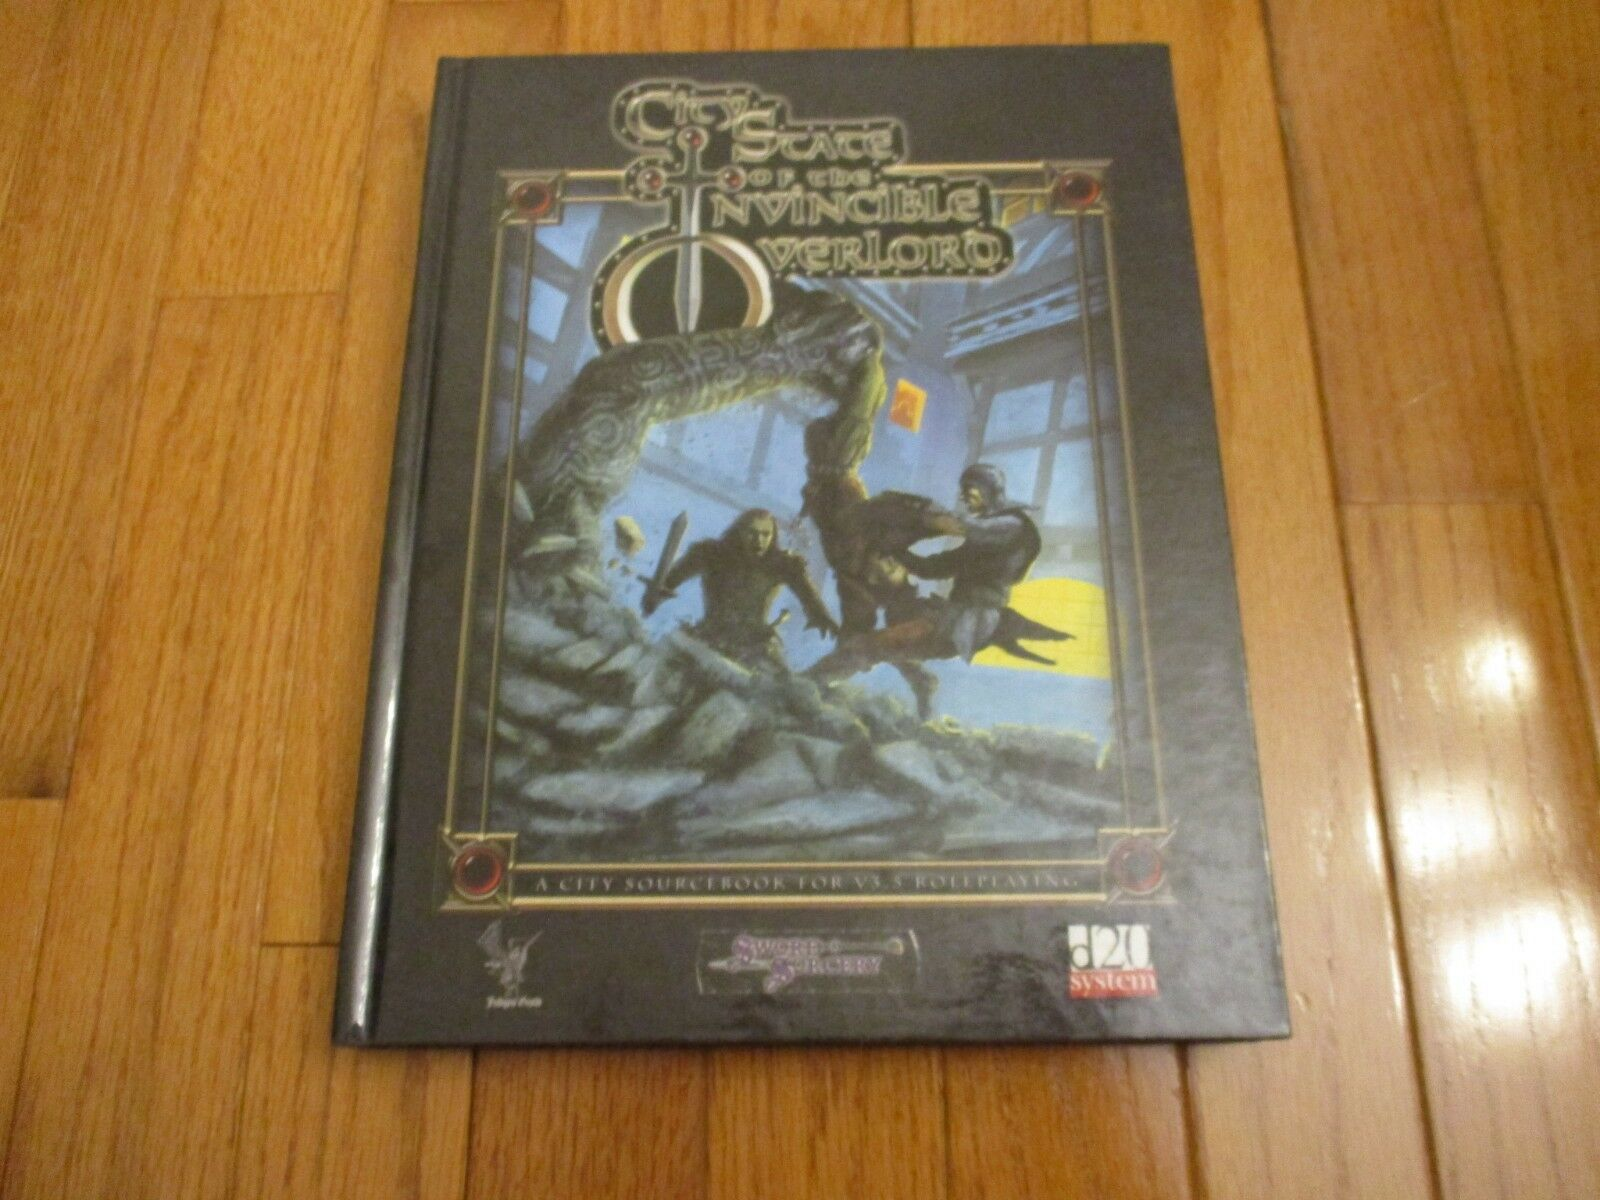 D&D D20 Sword & Sorcery City State of the Invincible Overlord HC